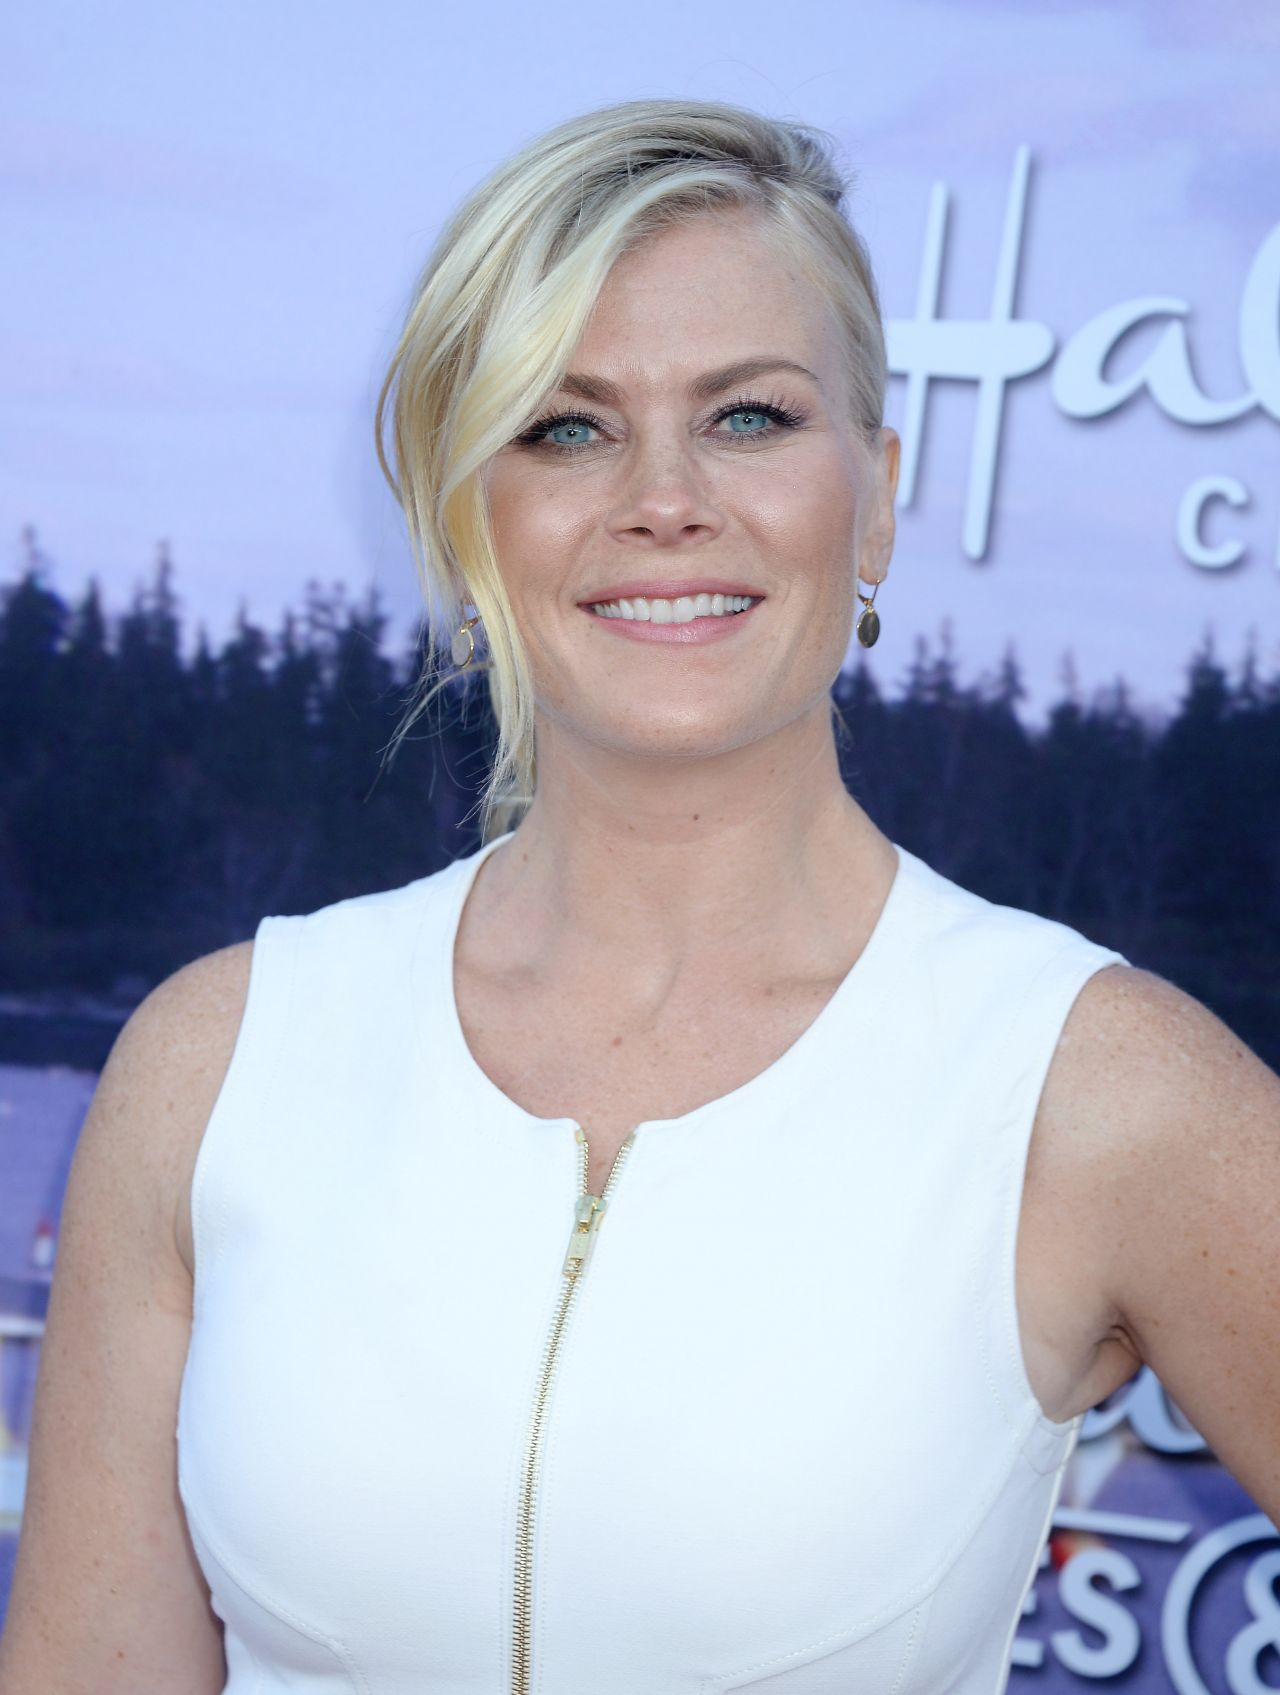 Image Result For Alison Sweeney Hallmark Movies List